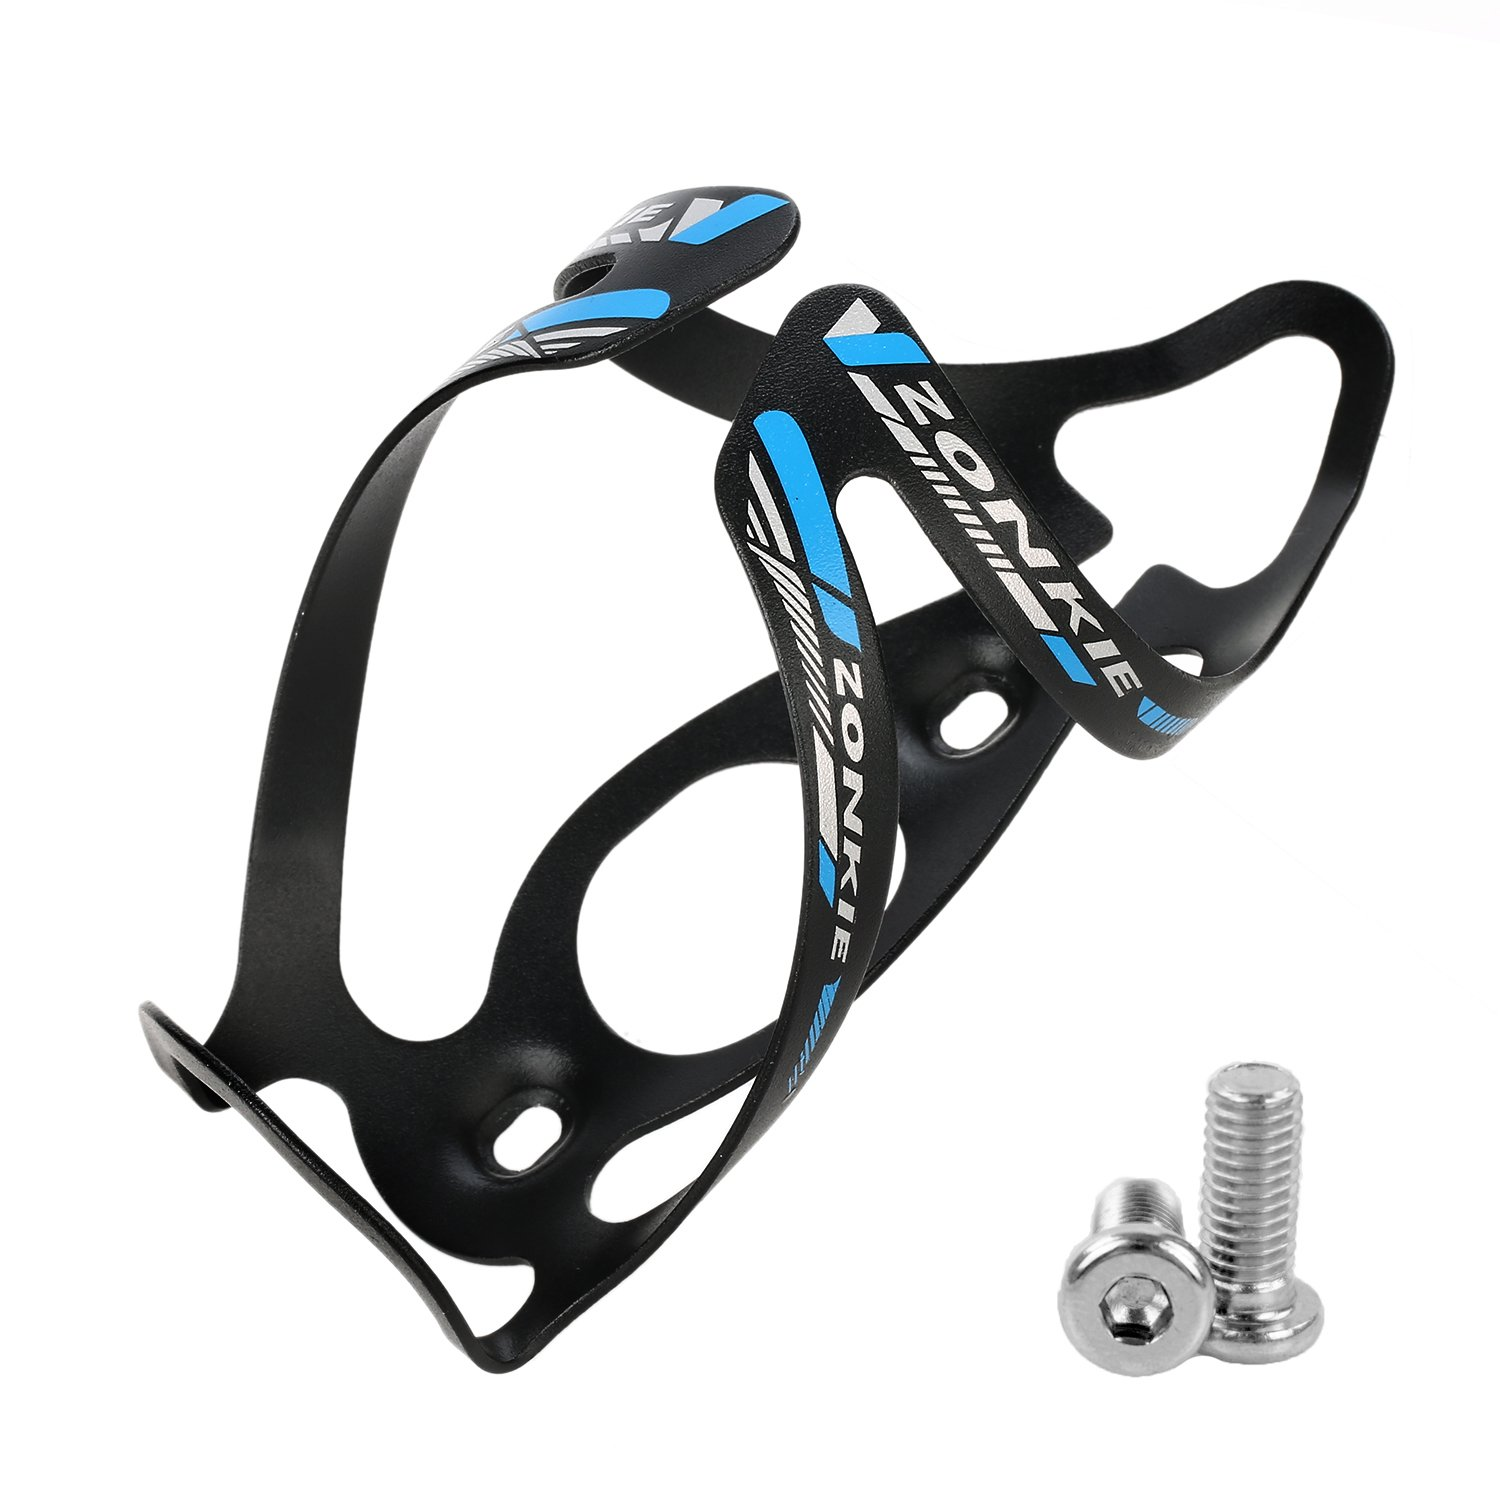 zonkie Road, Mountain Bicycle Water Bottle Cage, No Lost Bottles, Lightweight and Strong Bicycle Bottle Holder, Quick and Easy to Install, Great for Road, Mountain and Kids Bikes 30g